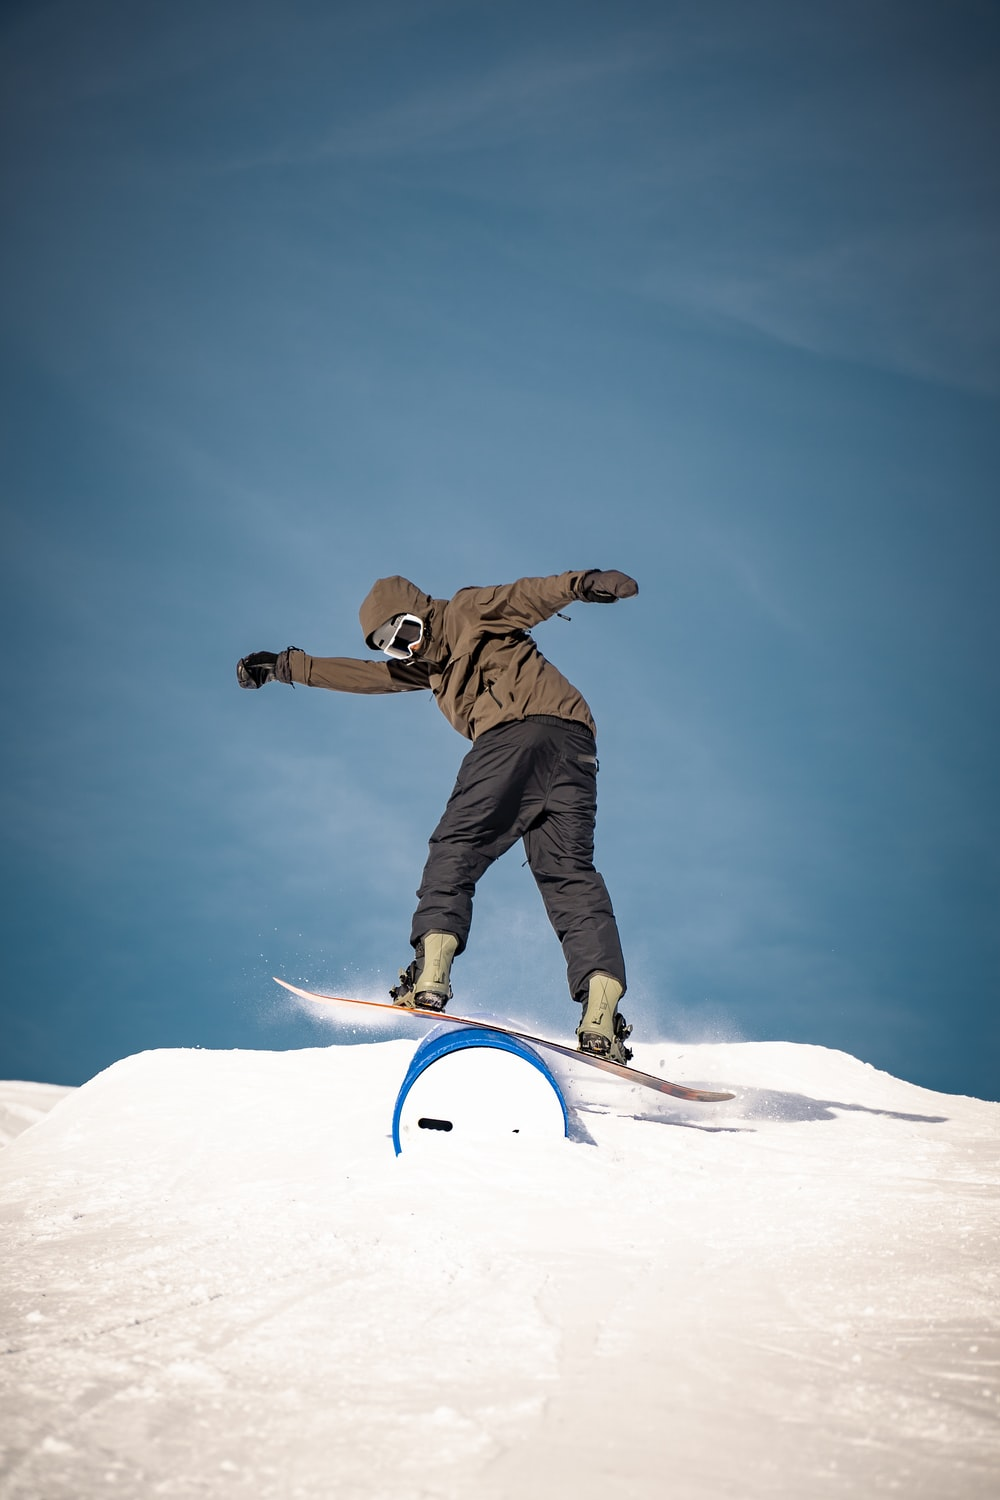 man in brown jacket and black pants riding white snowboard during daytime